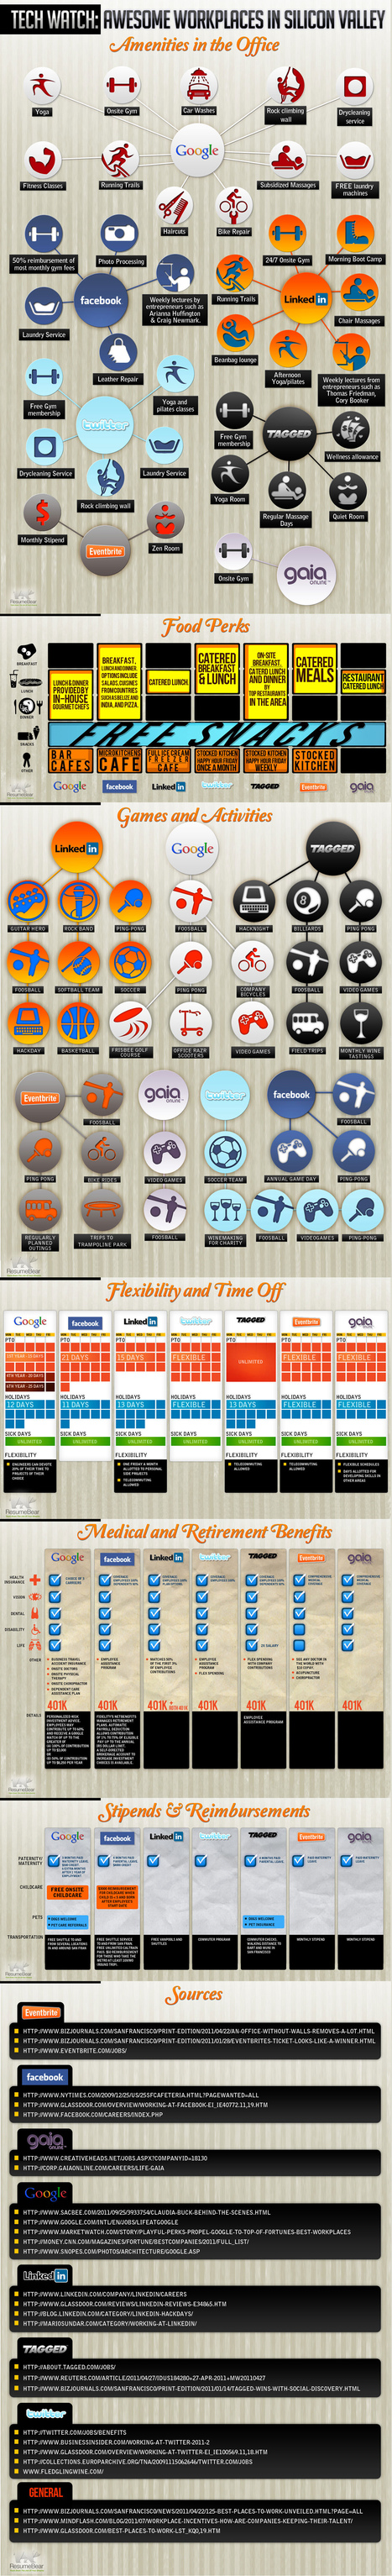 Remembering Our FirstInfographic | INFOGRAPHICS | Scoop.it